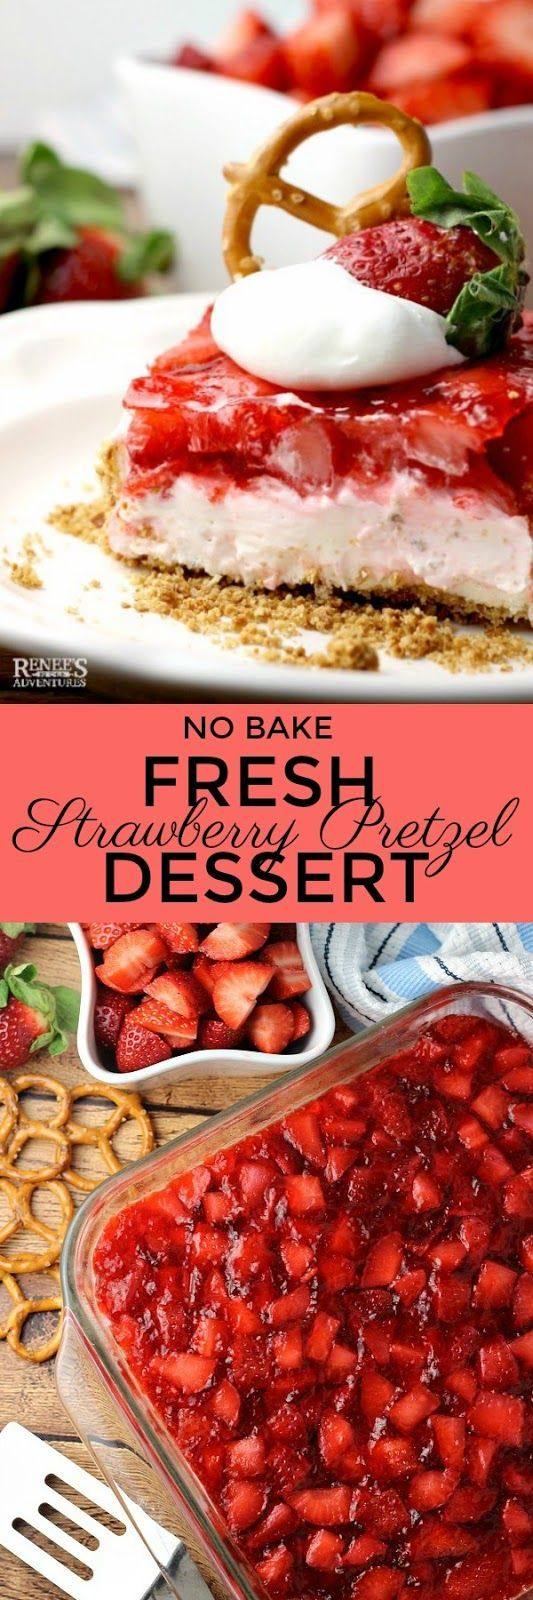 Fresh Strawberry Pretzel Dessert   by Renee's Kitchen Adventures - easy, no bake recipe for Strawberry Pretzel Dessert (aka Strawberry Pretzel Salad) lightened up  by using fresh strawberries, sugar free jello, and light cream cheese. This classic recipe for Strawberry Pretzel Dessert is always a hit at parties, pot luck, and family gatherings. Easy to make. Fresh strawberries make a difference in this dessert recipe. @Flastrawberries #SundaySupper #FlStrawberry #Strawberries…